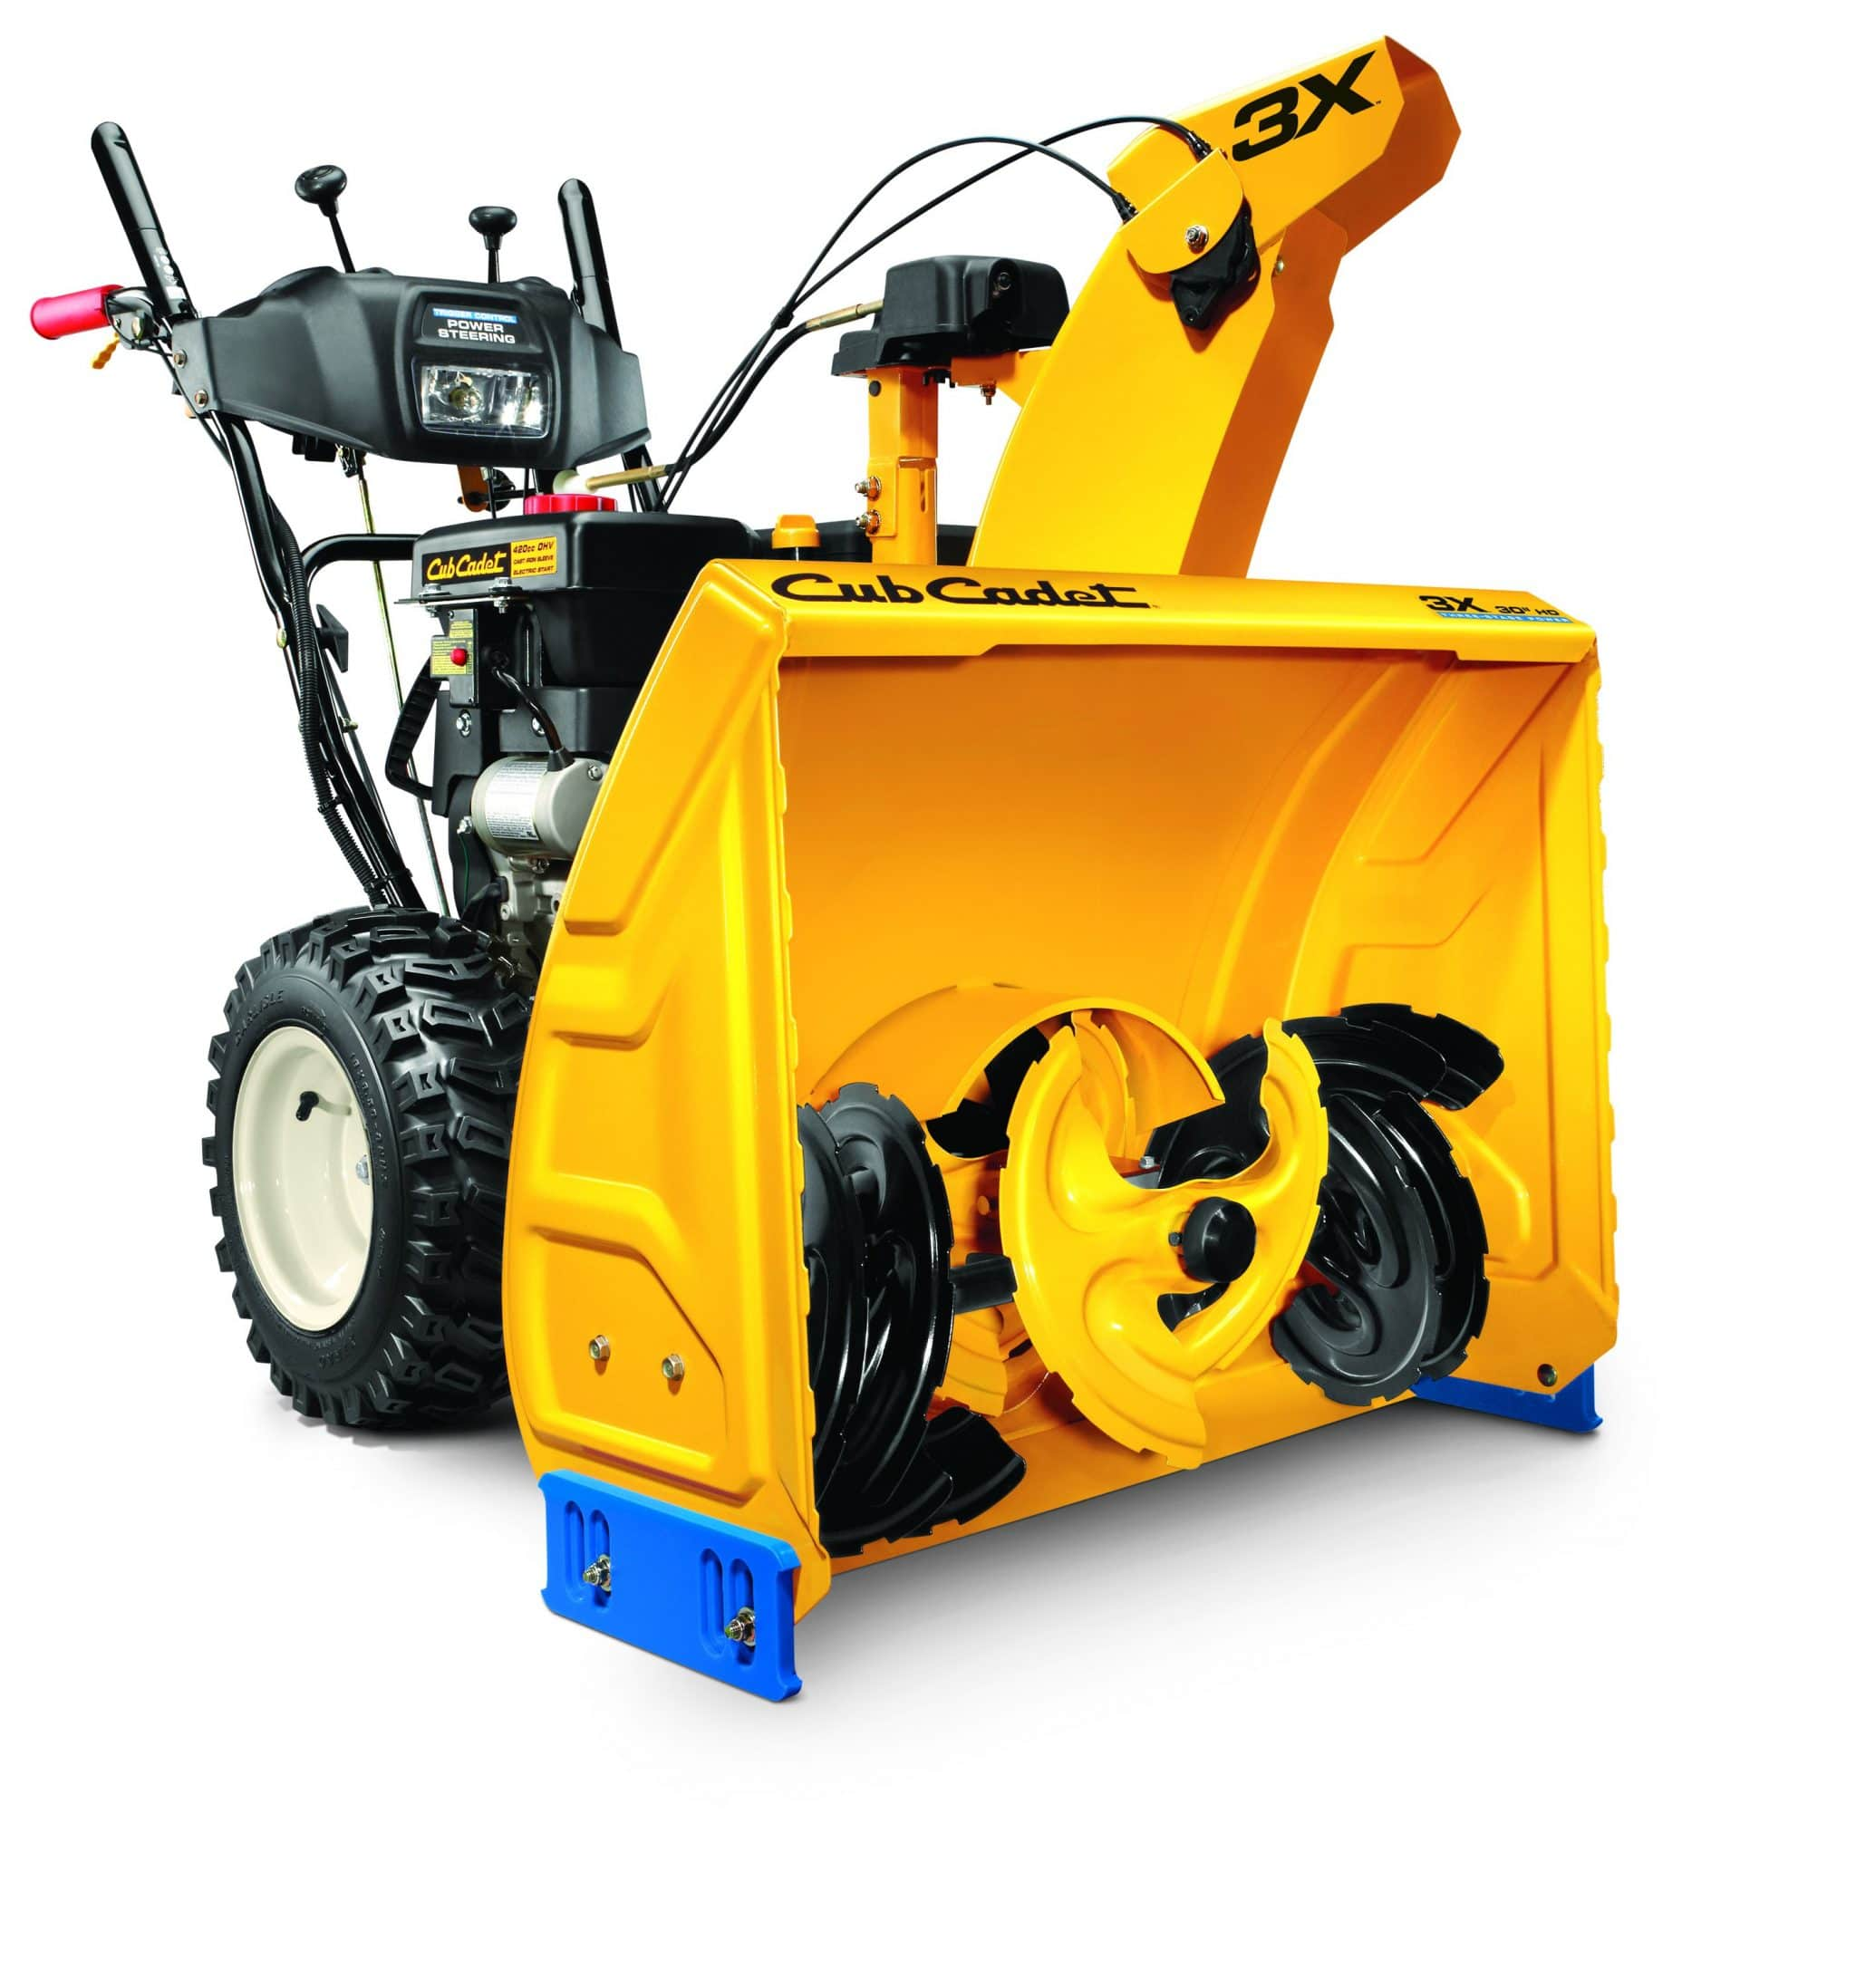 What S The Difference Between Cub Cadet Snow Blower At Home